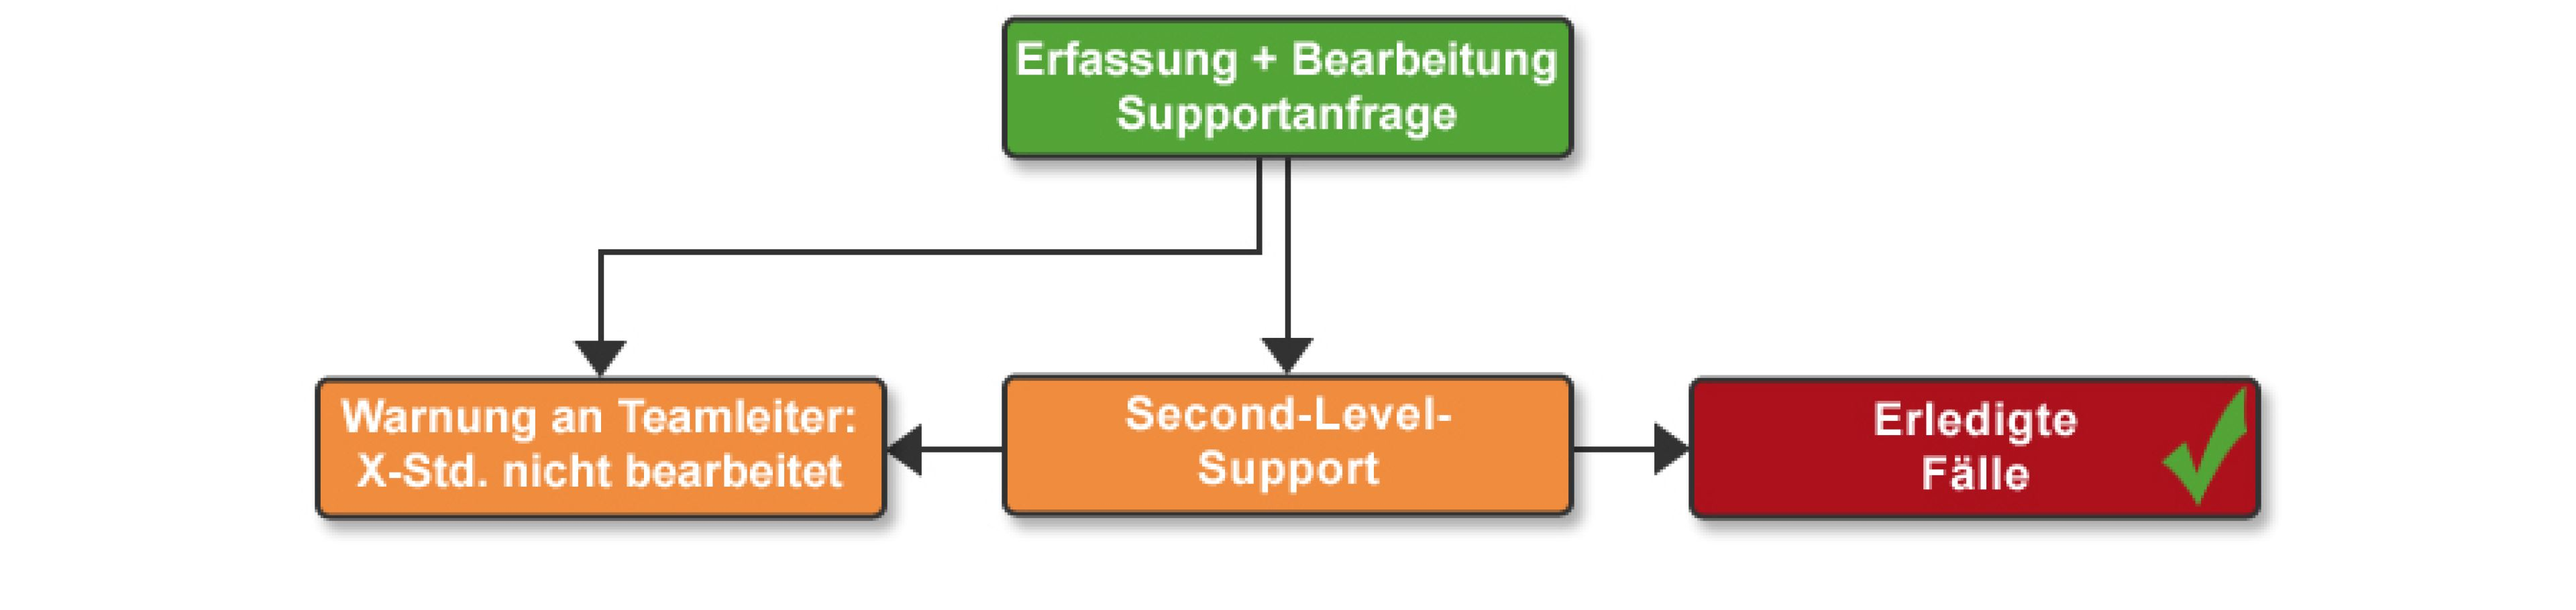 Inbound Softrware: Helpdesk mit Eskalationspfad